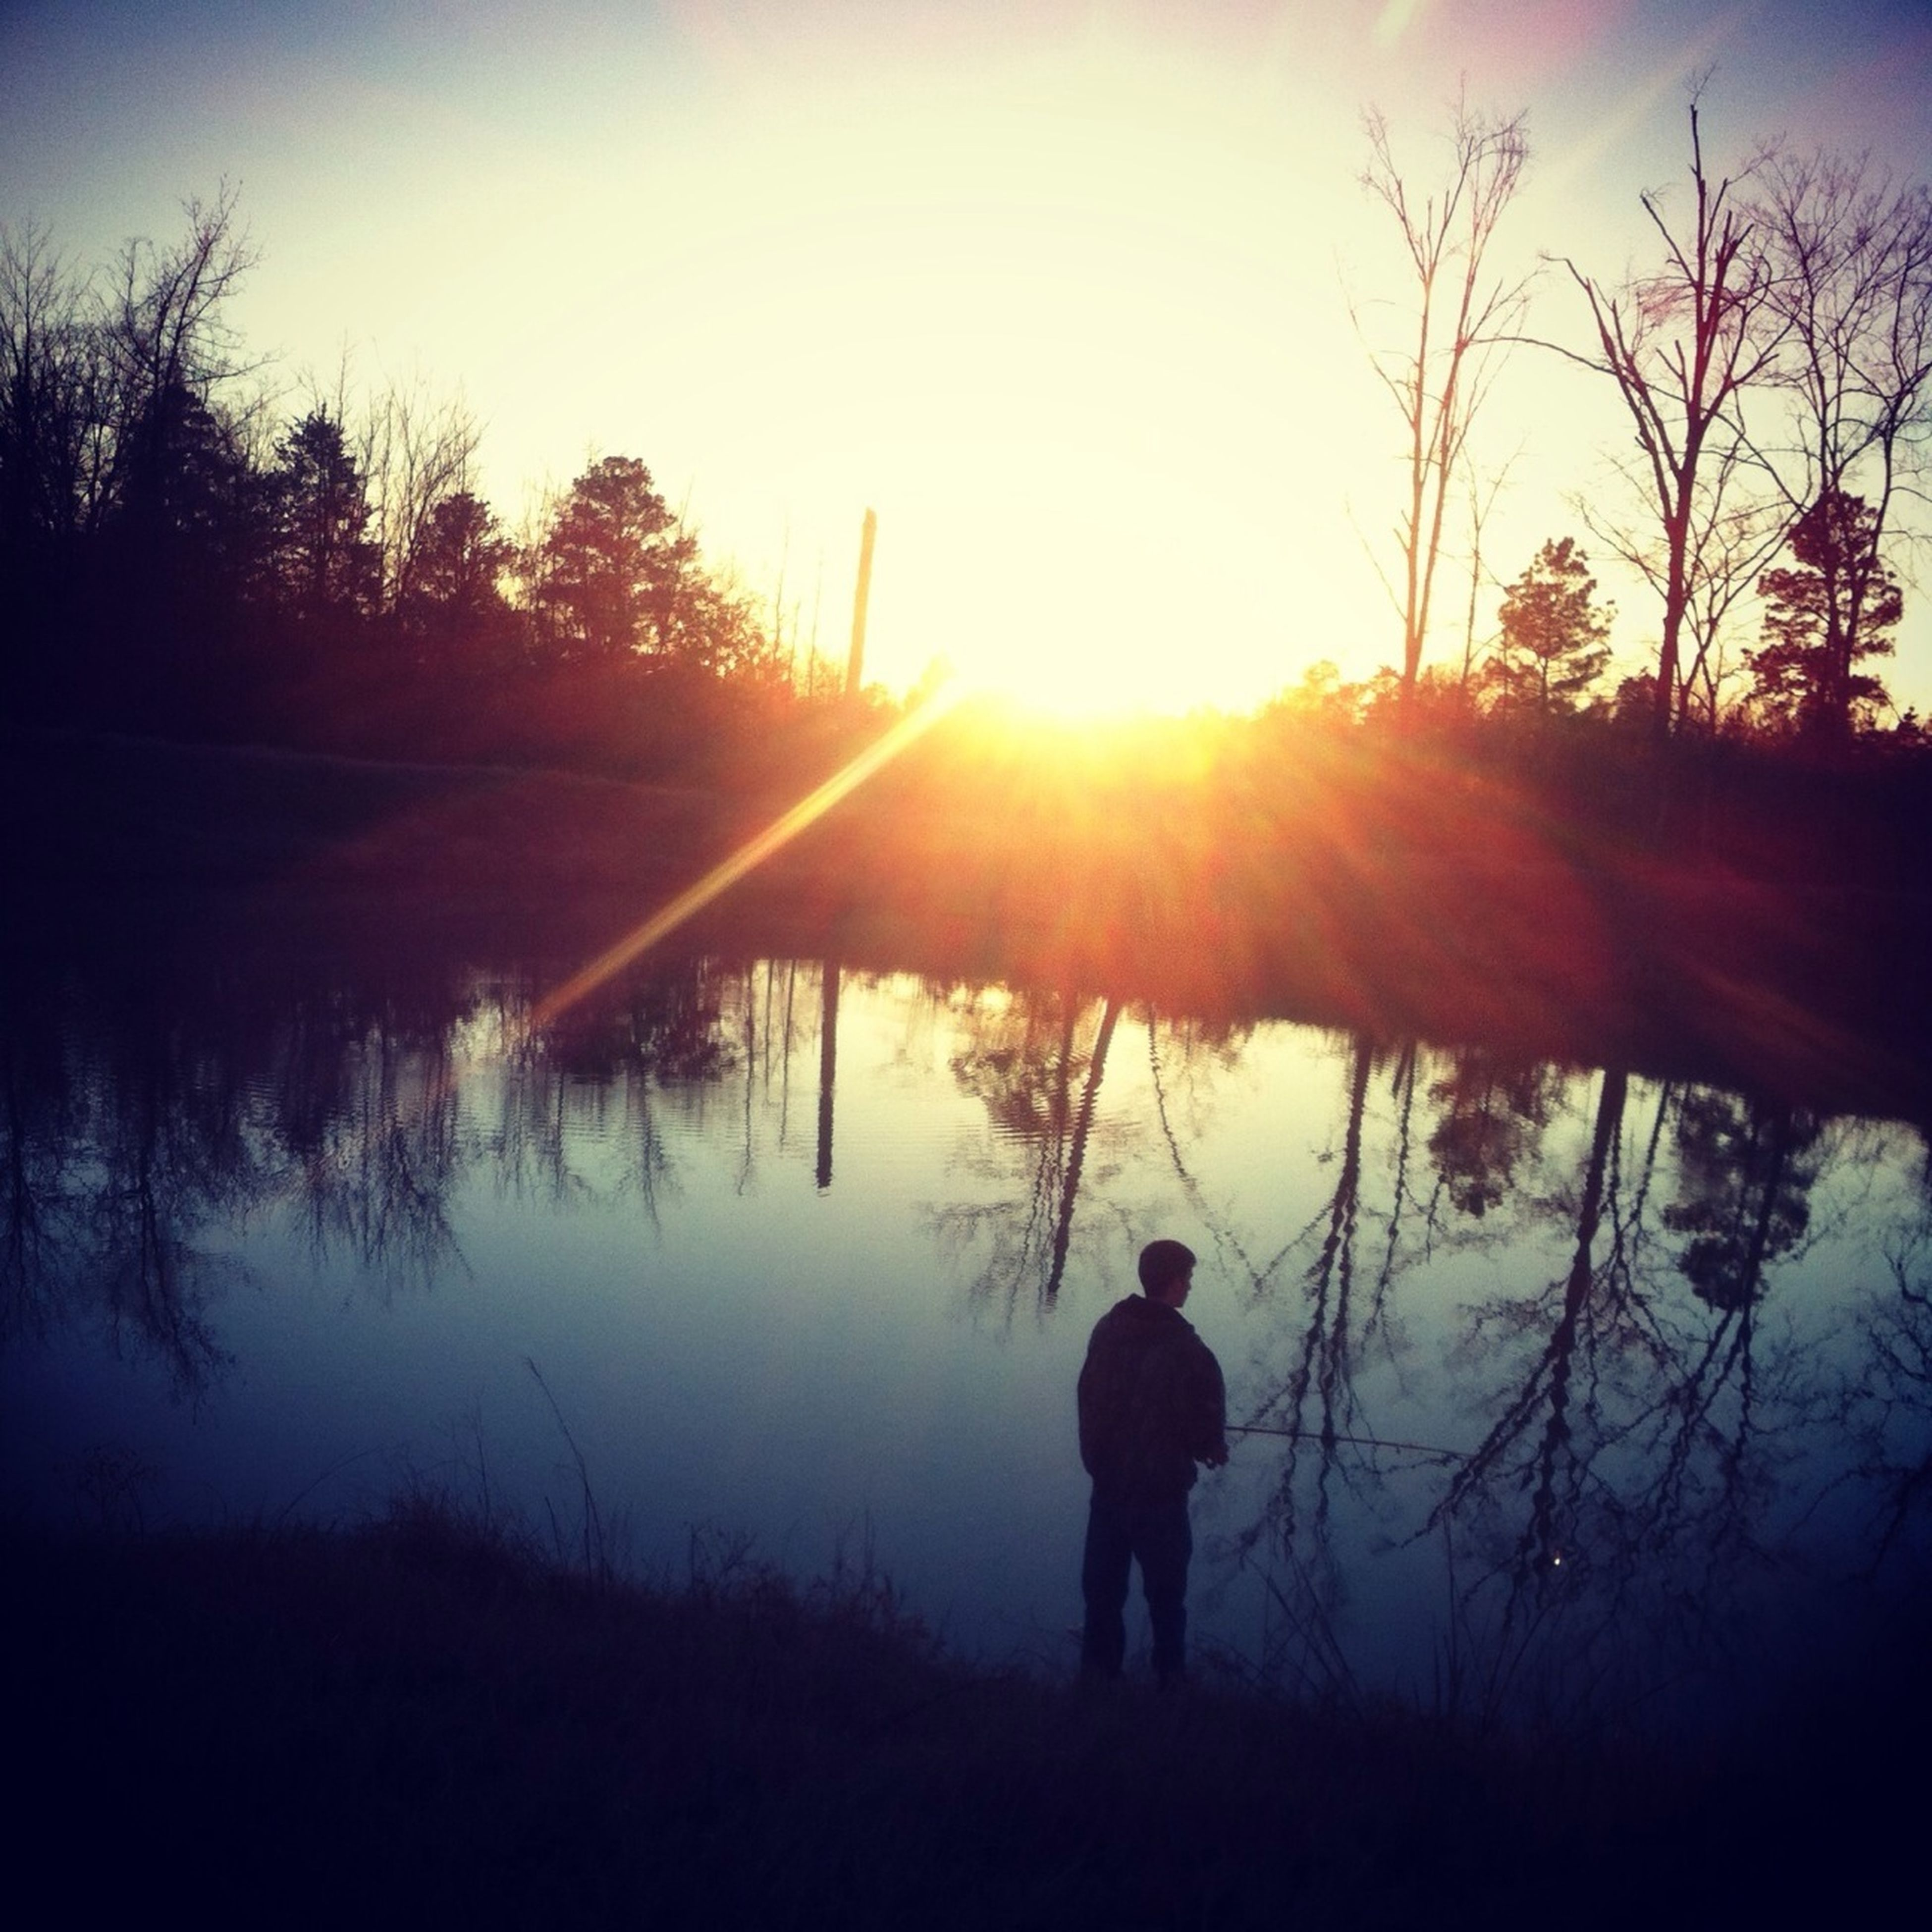 sun, sunset, silhouette, lifestyles, leisure activity, tranquil scene, tree, water, tranquility, rear view, lake, beauty in nature, reflection, sunlight, men, standing, scenics, nature